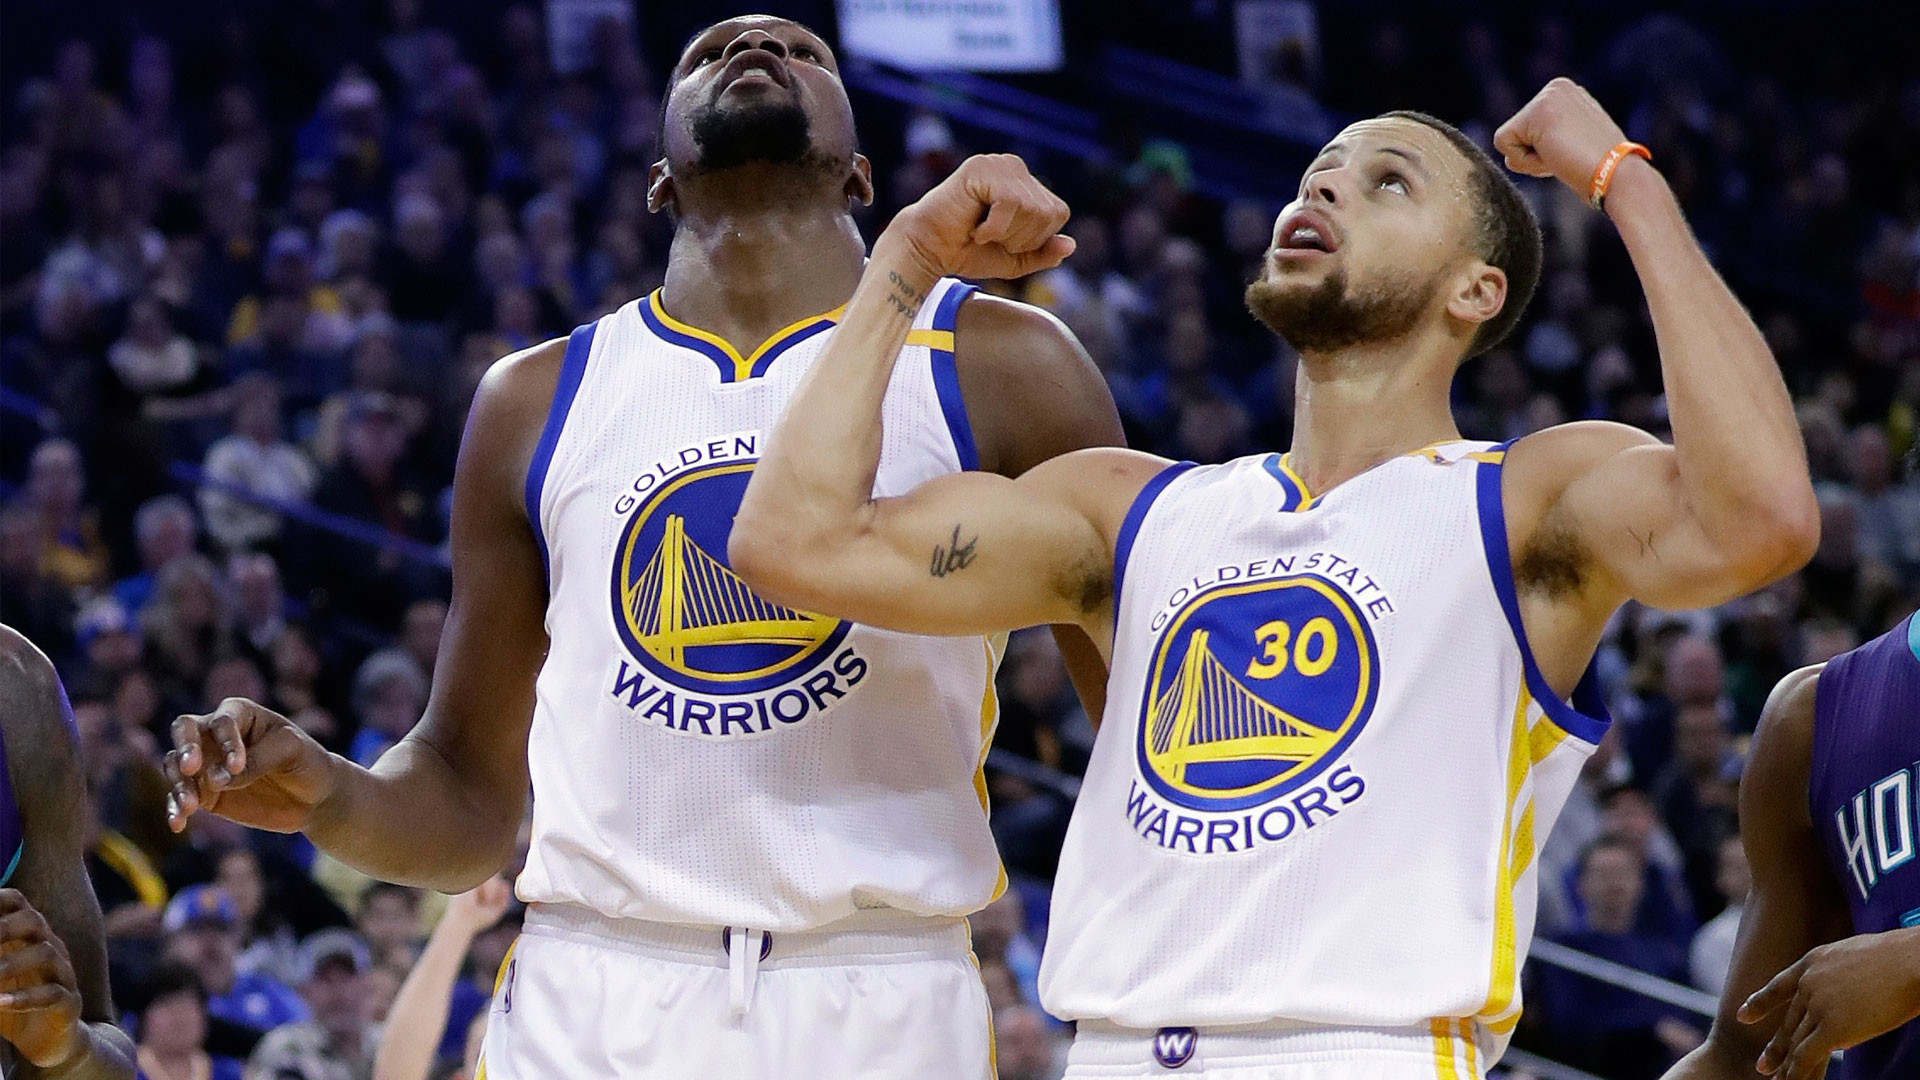 Kevin Durant Wallpaper with Stephen Curry 3 Kevin Durant Wallpaper HD …